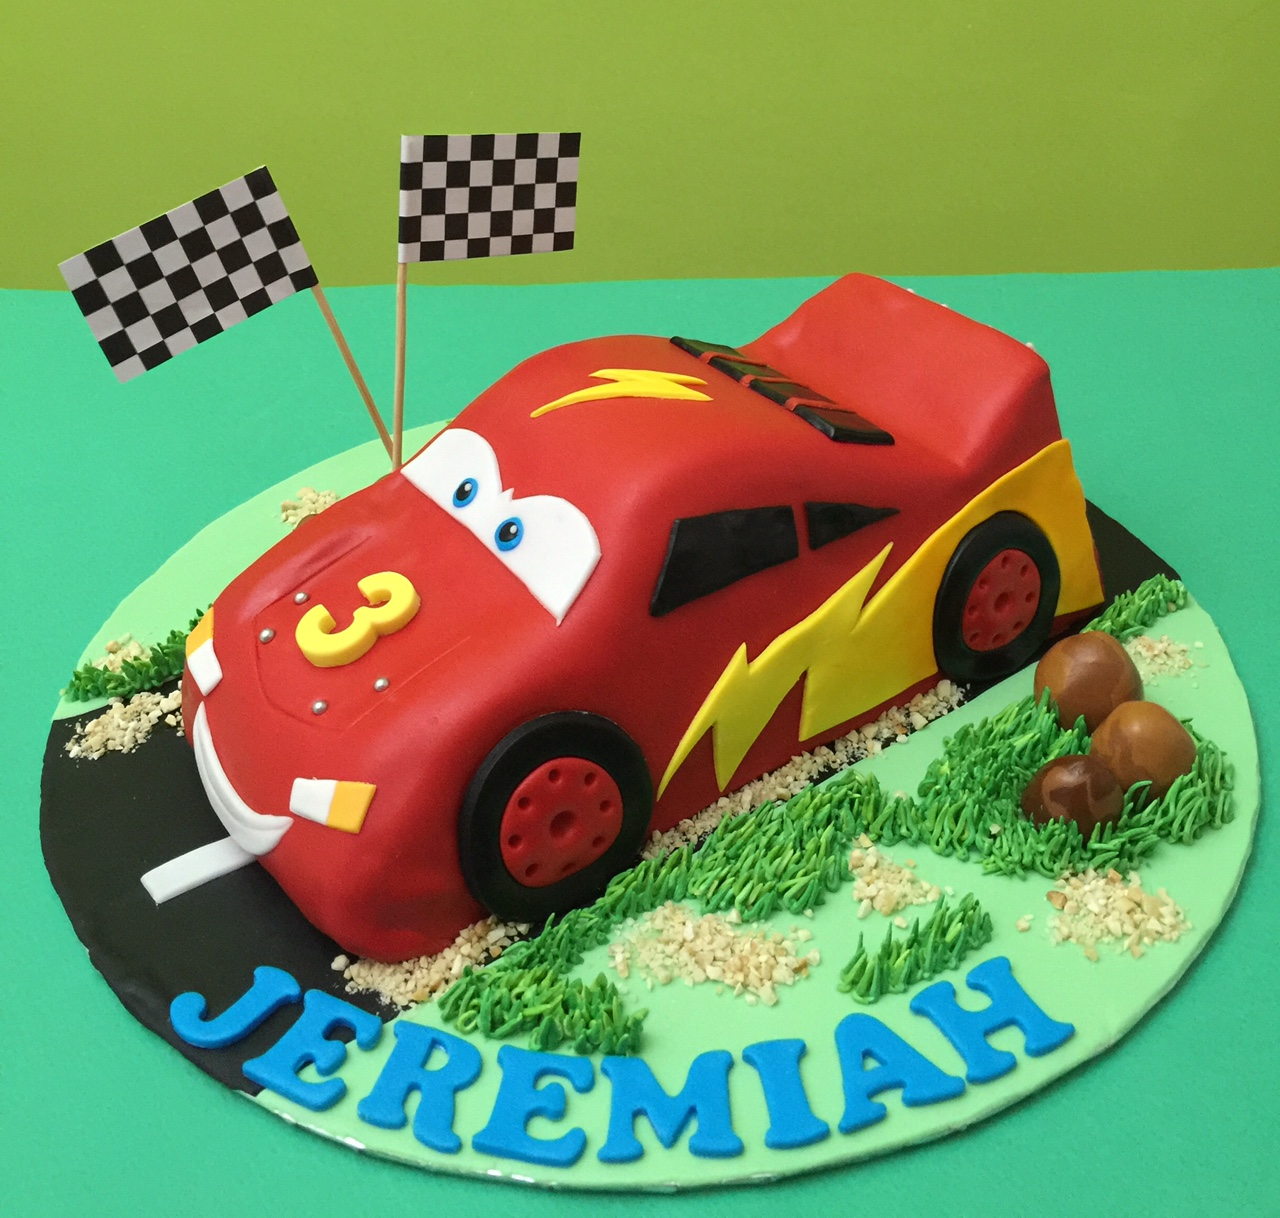 Customised birthday cakes in bangalore dating 5